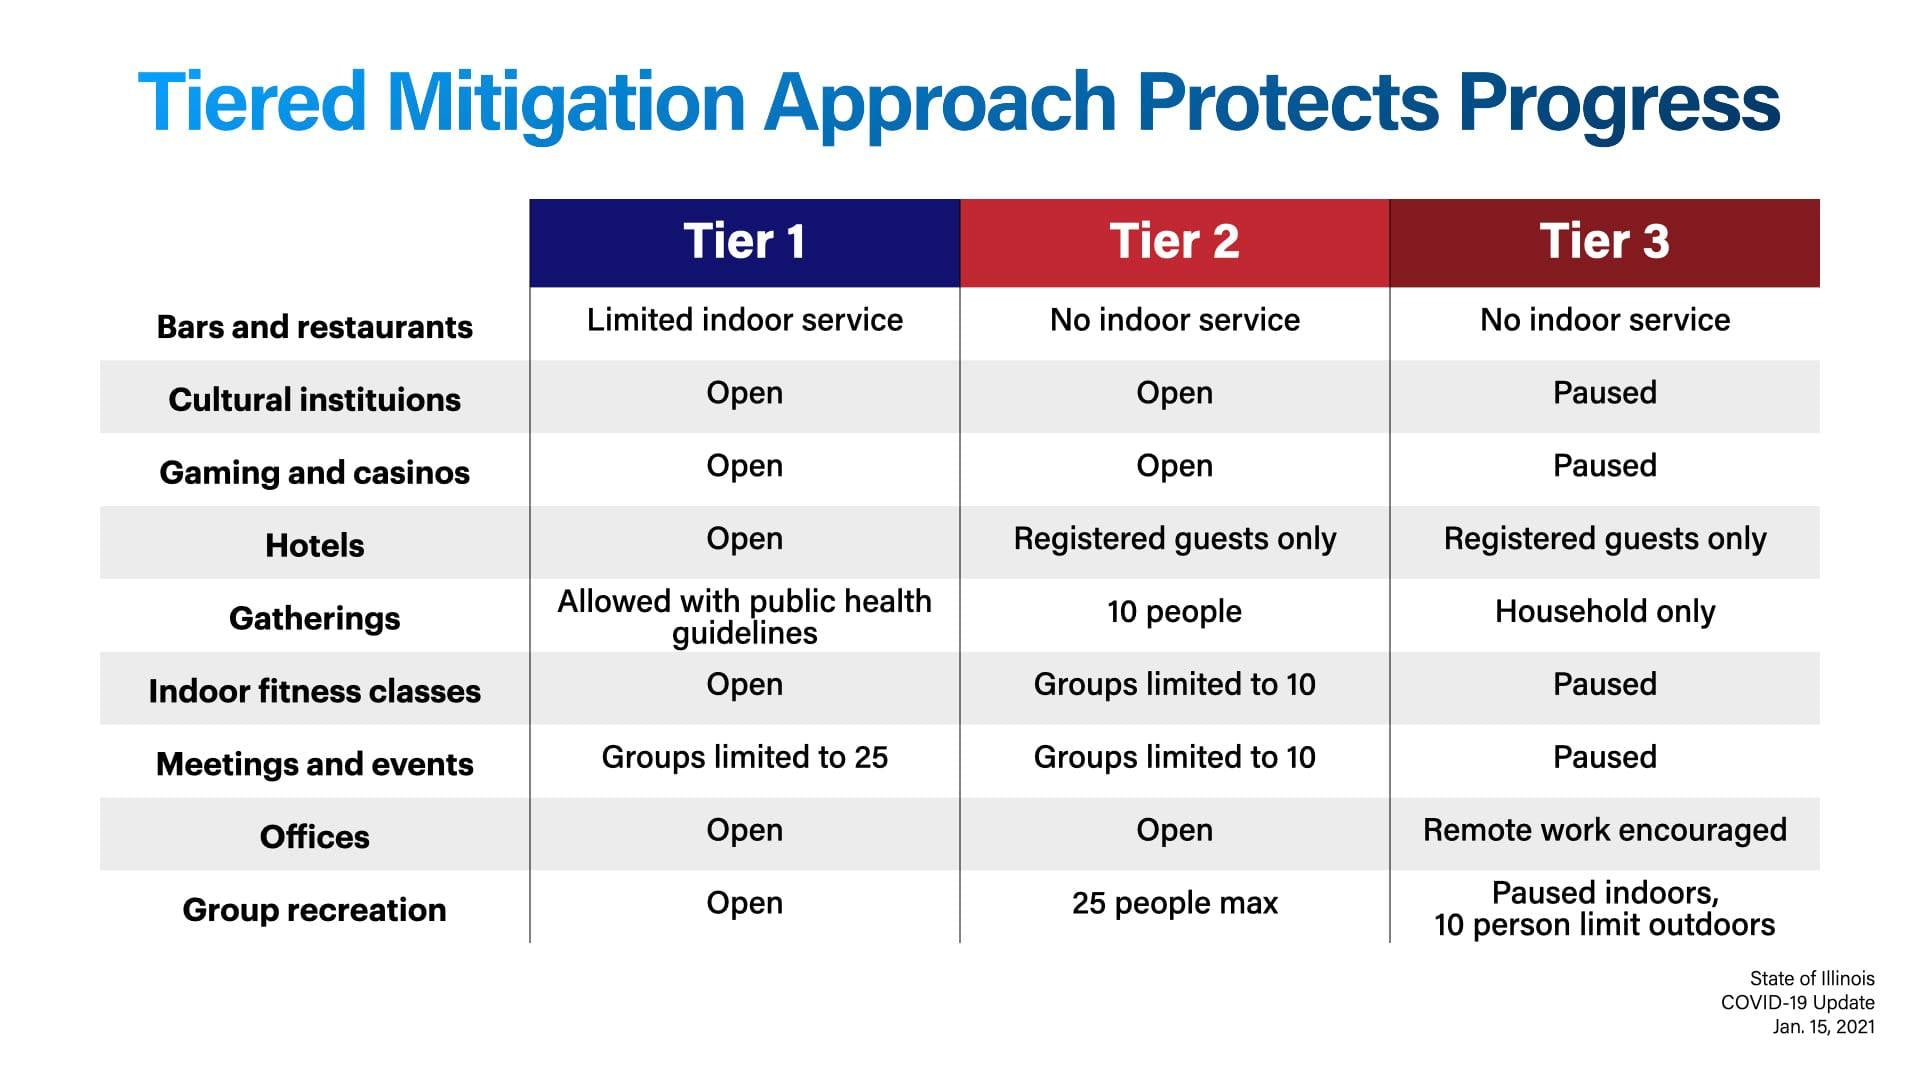 Tiered Mitigation Approach